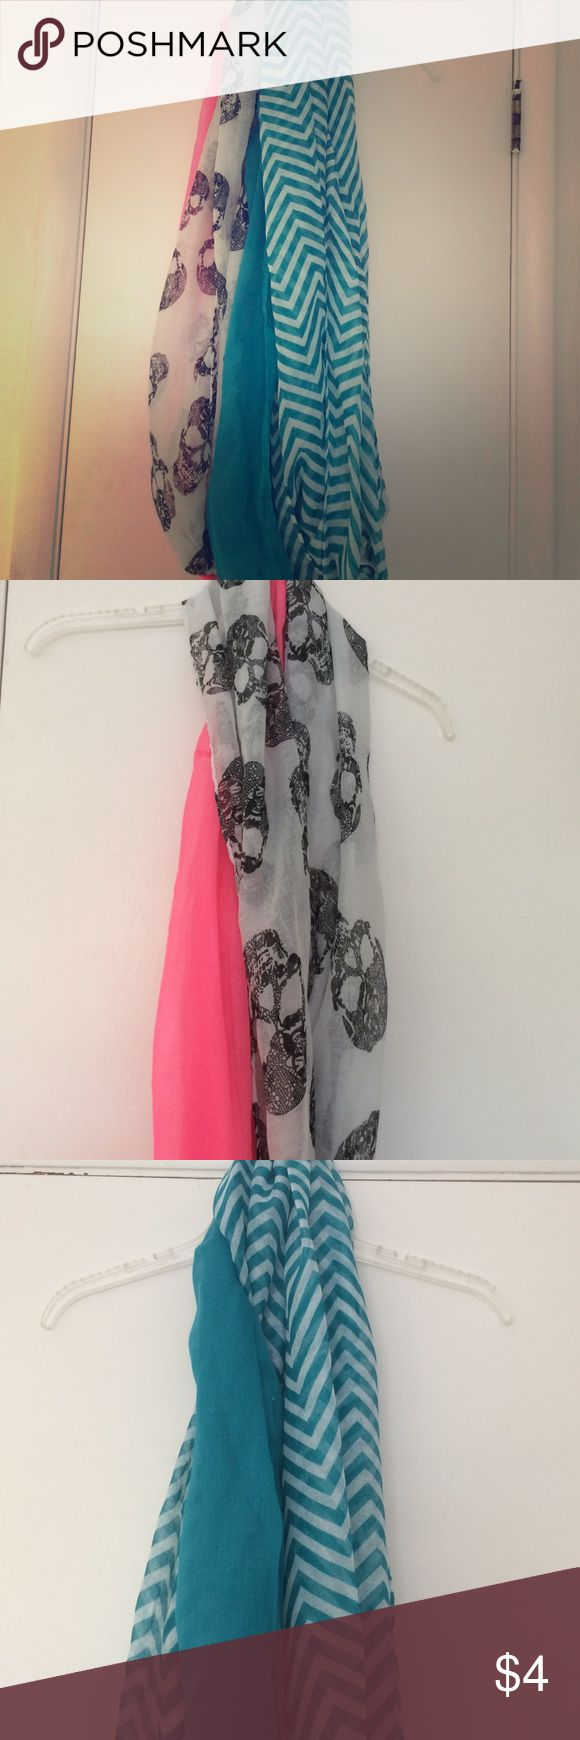 Selling this Pack of four scarfs on Poshmark! My username is: meea98. #shopmycloset #poshmark #fashion #shopping #style #forsale #Faded Glory #Accessories